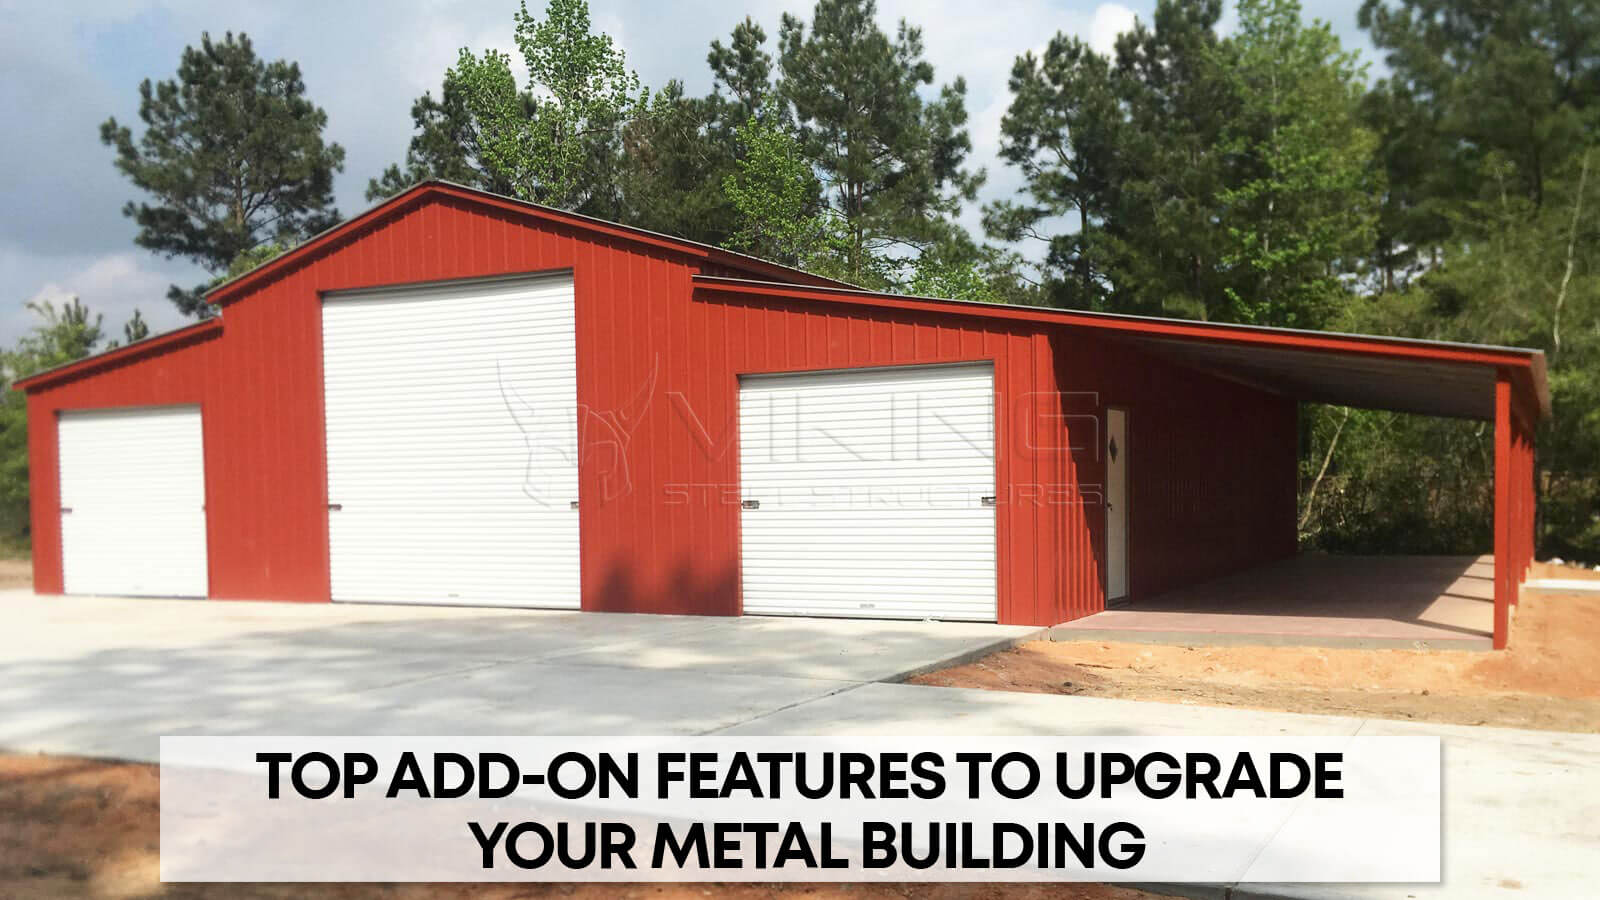 Top Add-On Features to Upgrade Your Metal Building